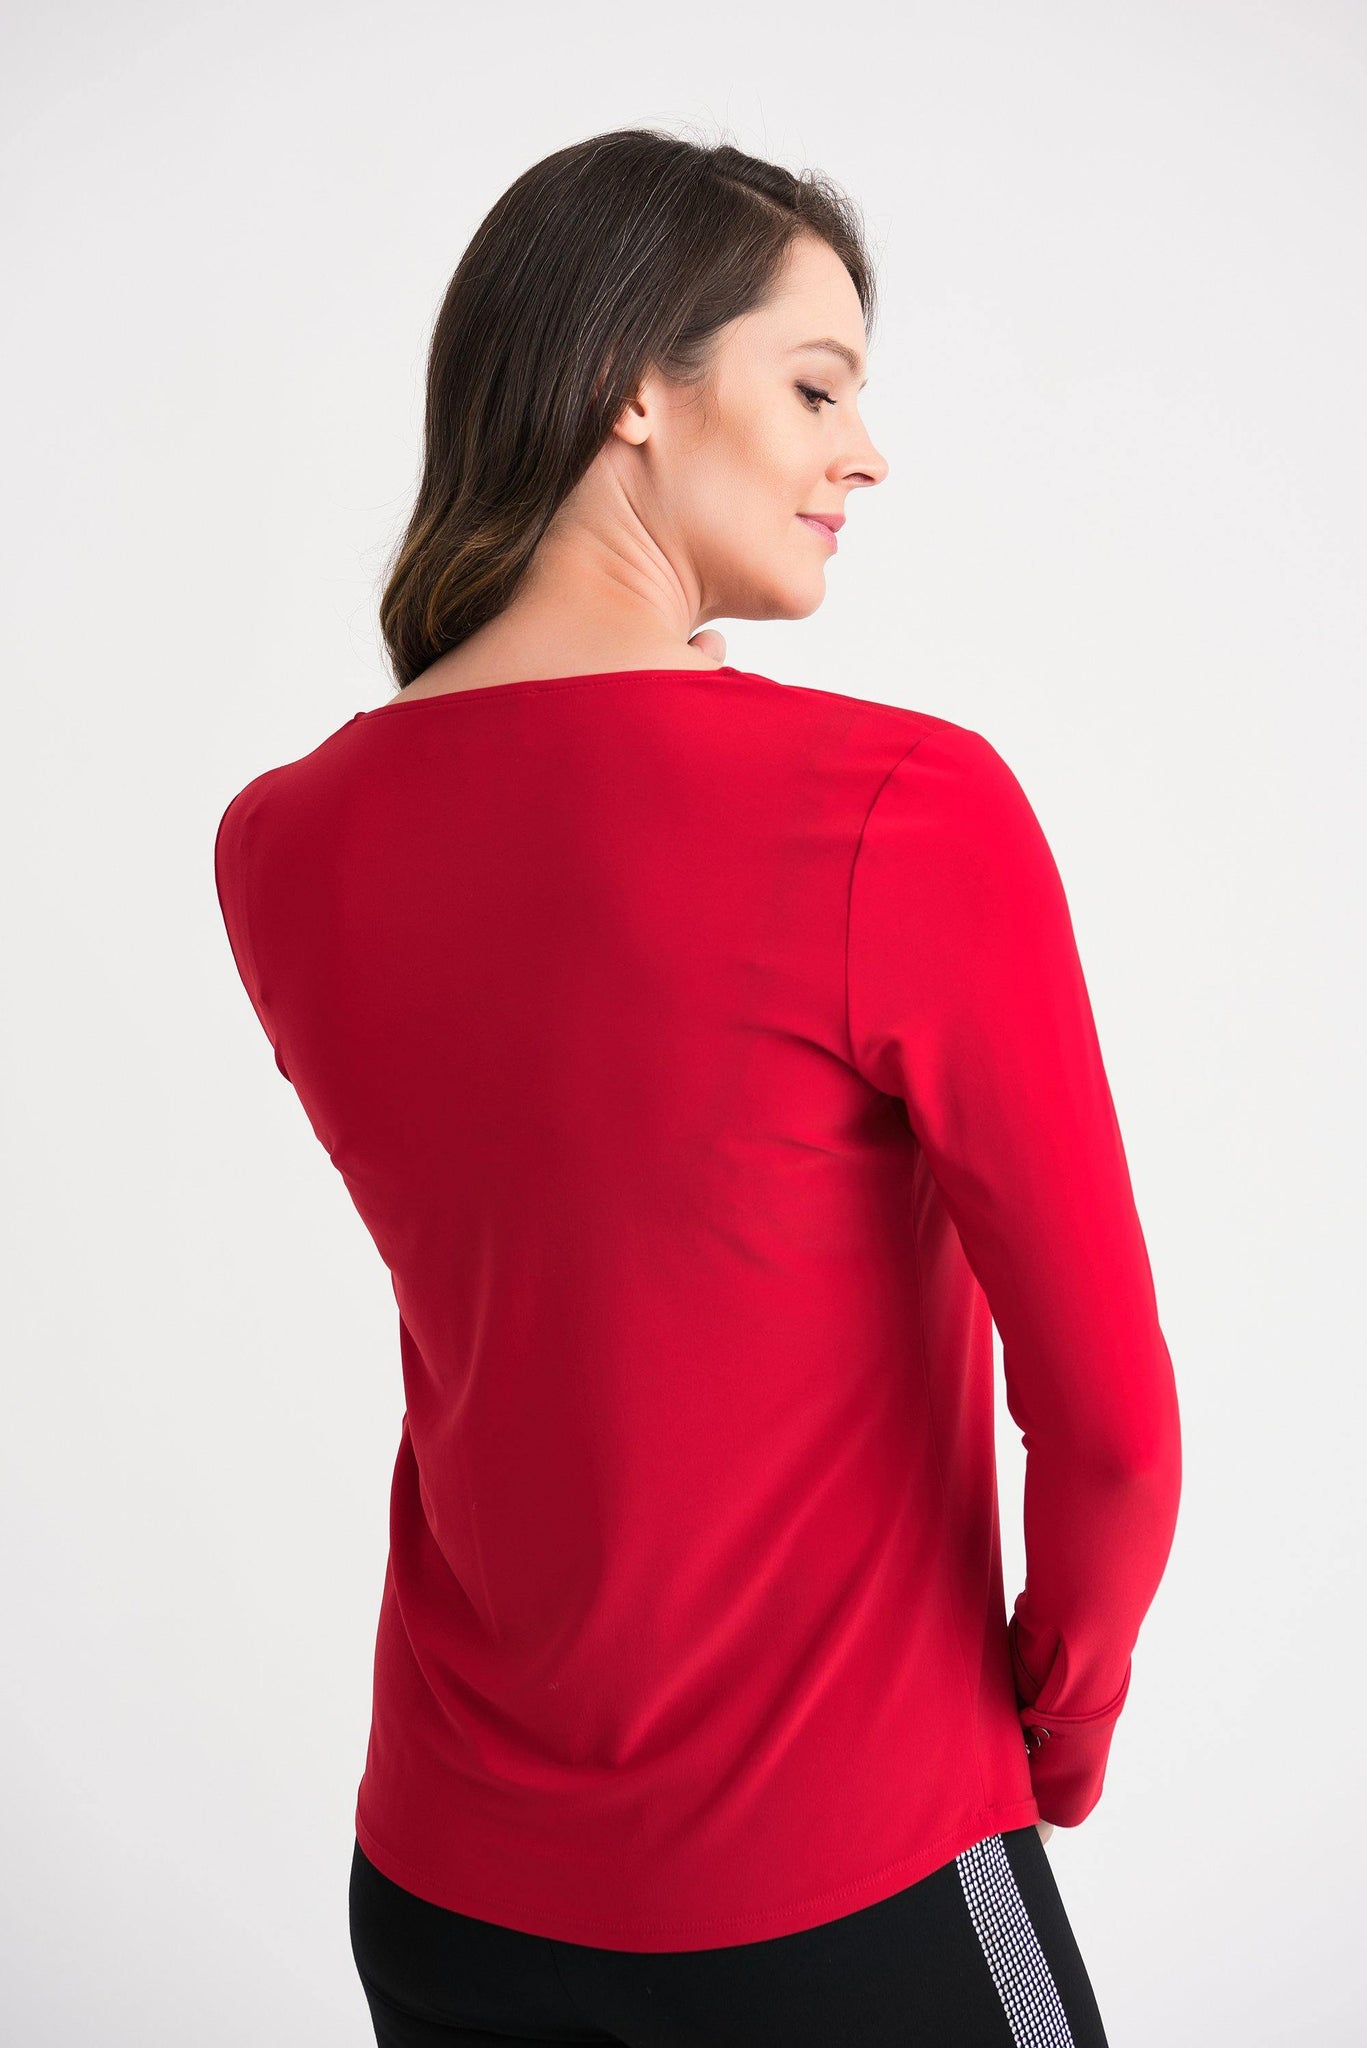 V-neck Blouse by Joseph Ribkoff - Weekends on 2nd Ave